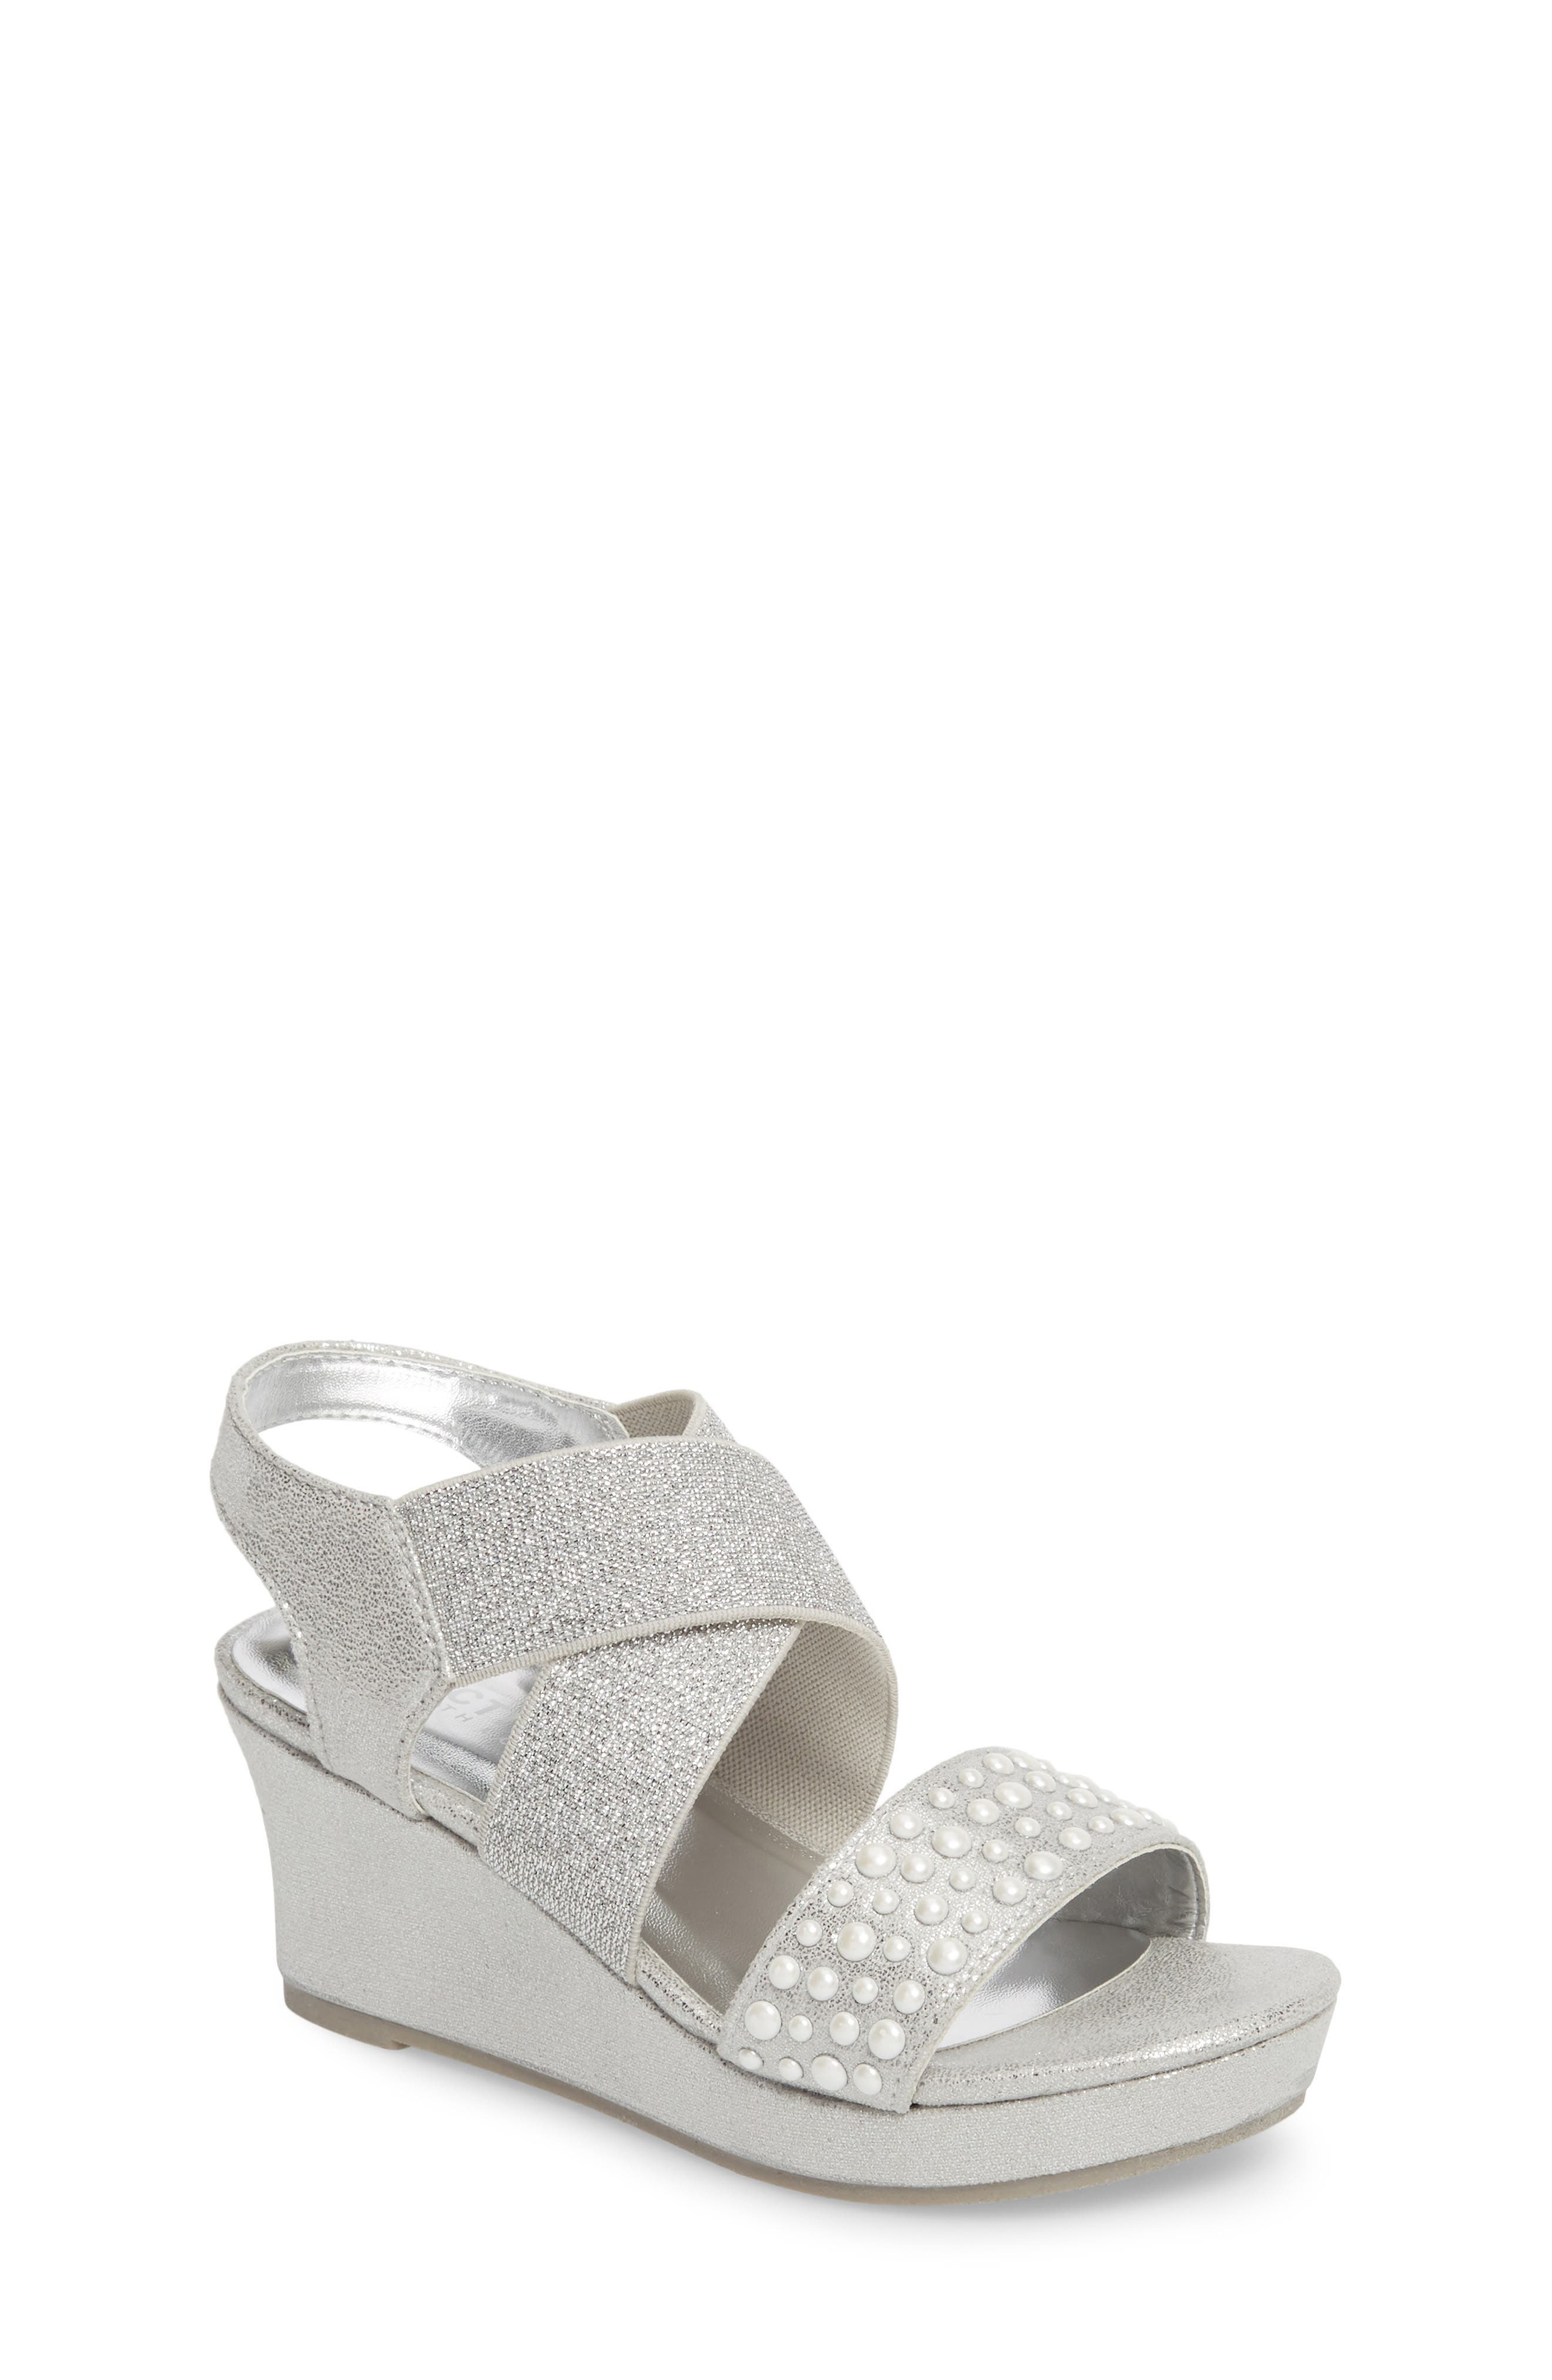 Reed Glimmer Wedge Sandal,                         Main,                         color, Silver